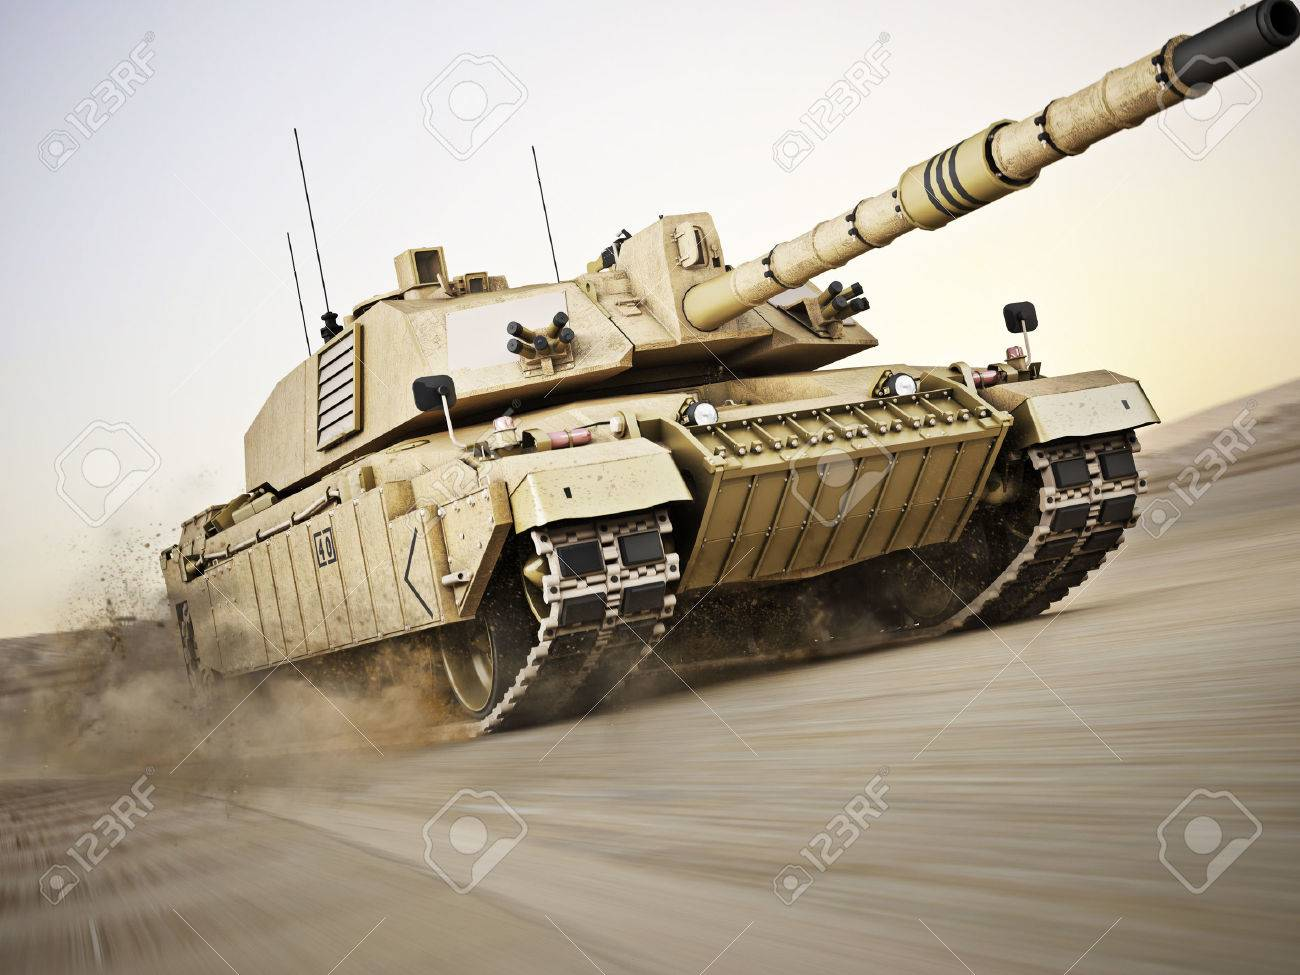 Military armored tank moving at a high rate of speed with motion blur over sand. Generic photo realistic 3d model scene. Standard-Bild - 43692171